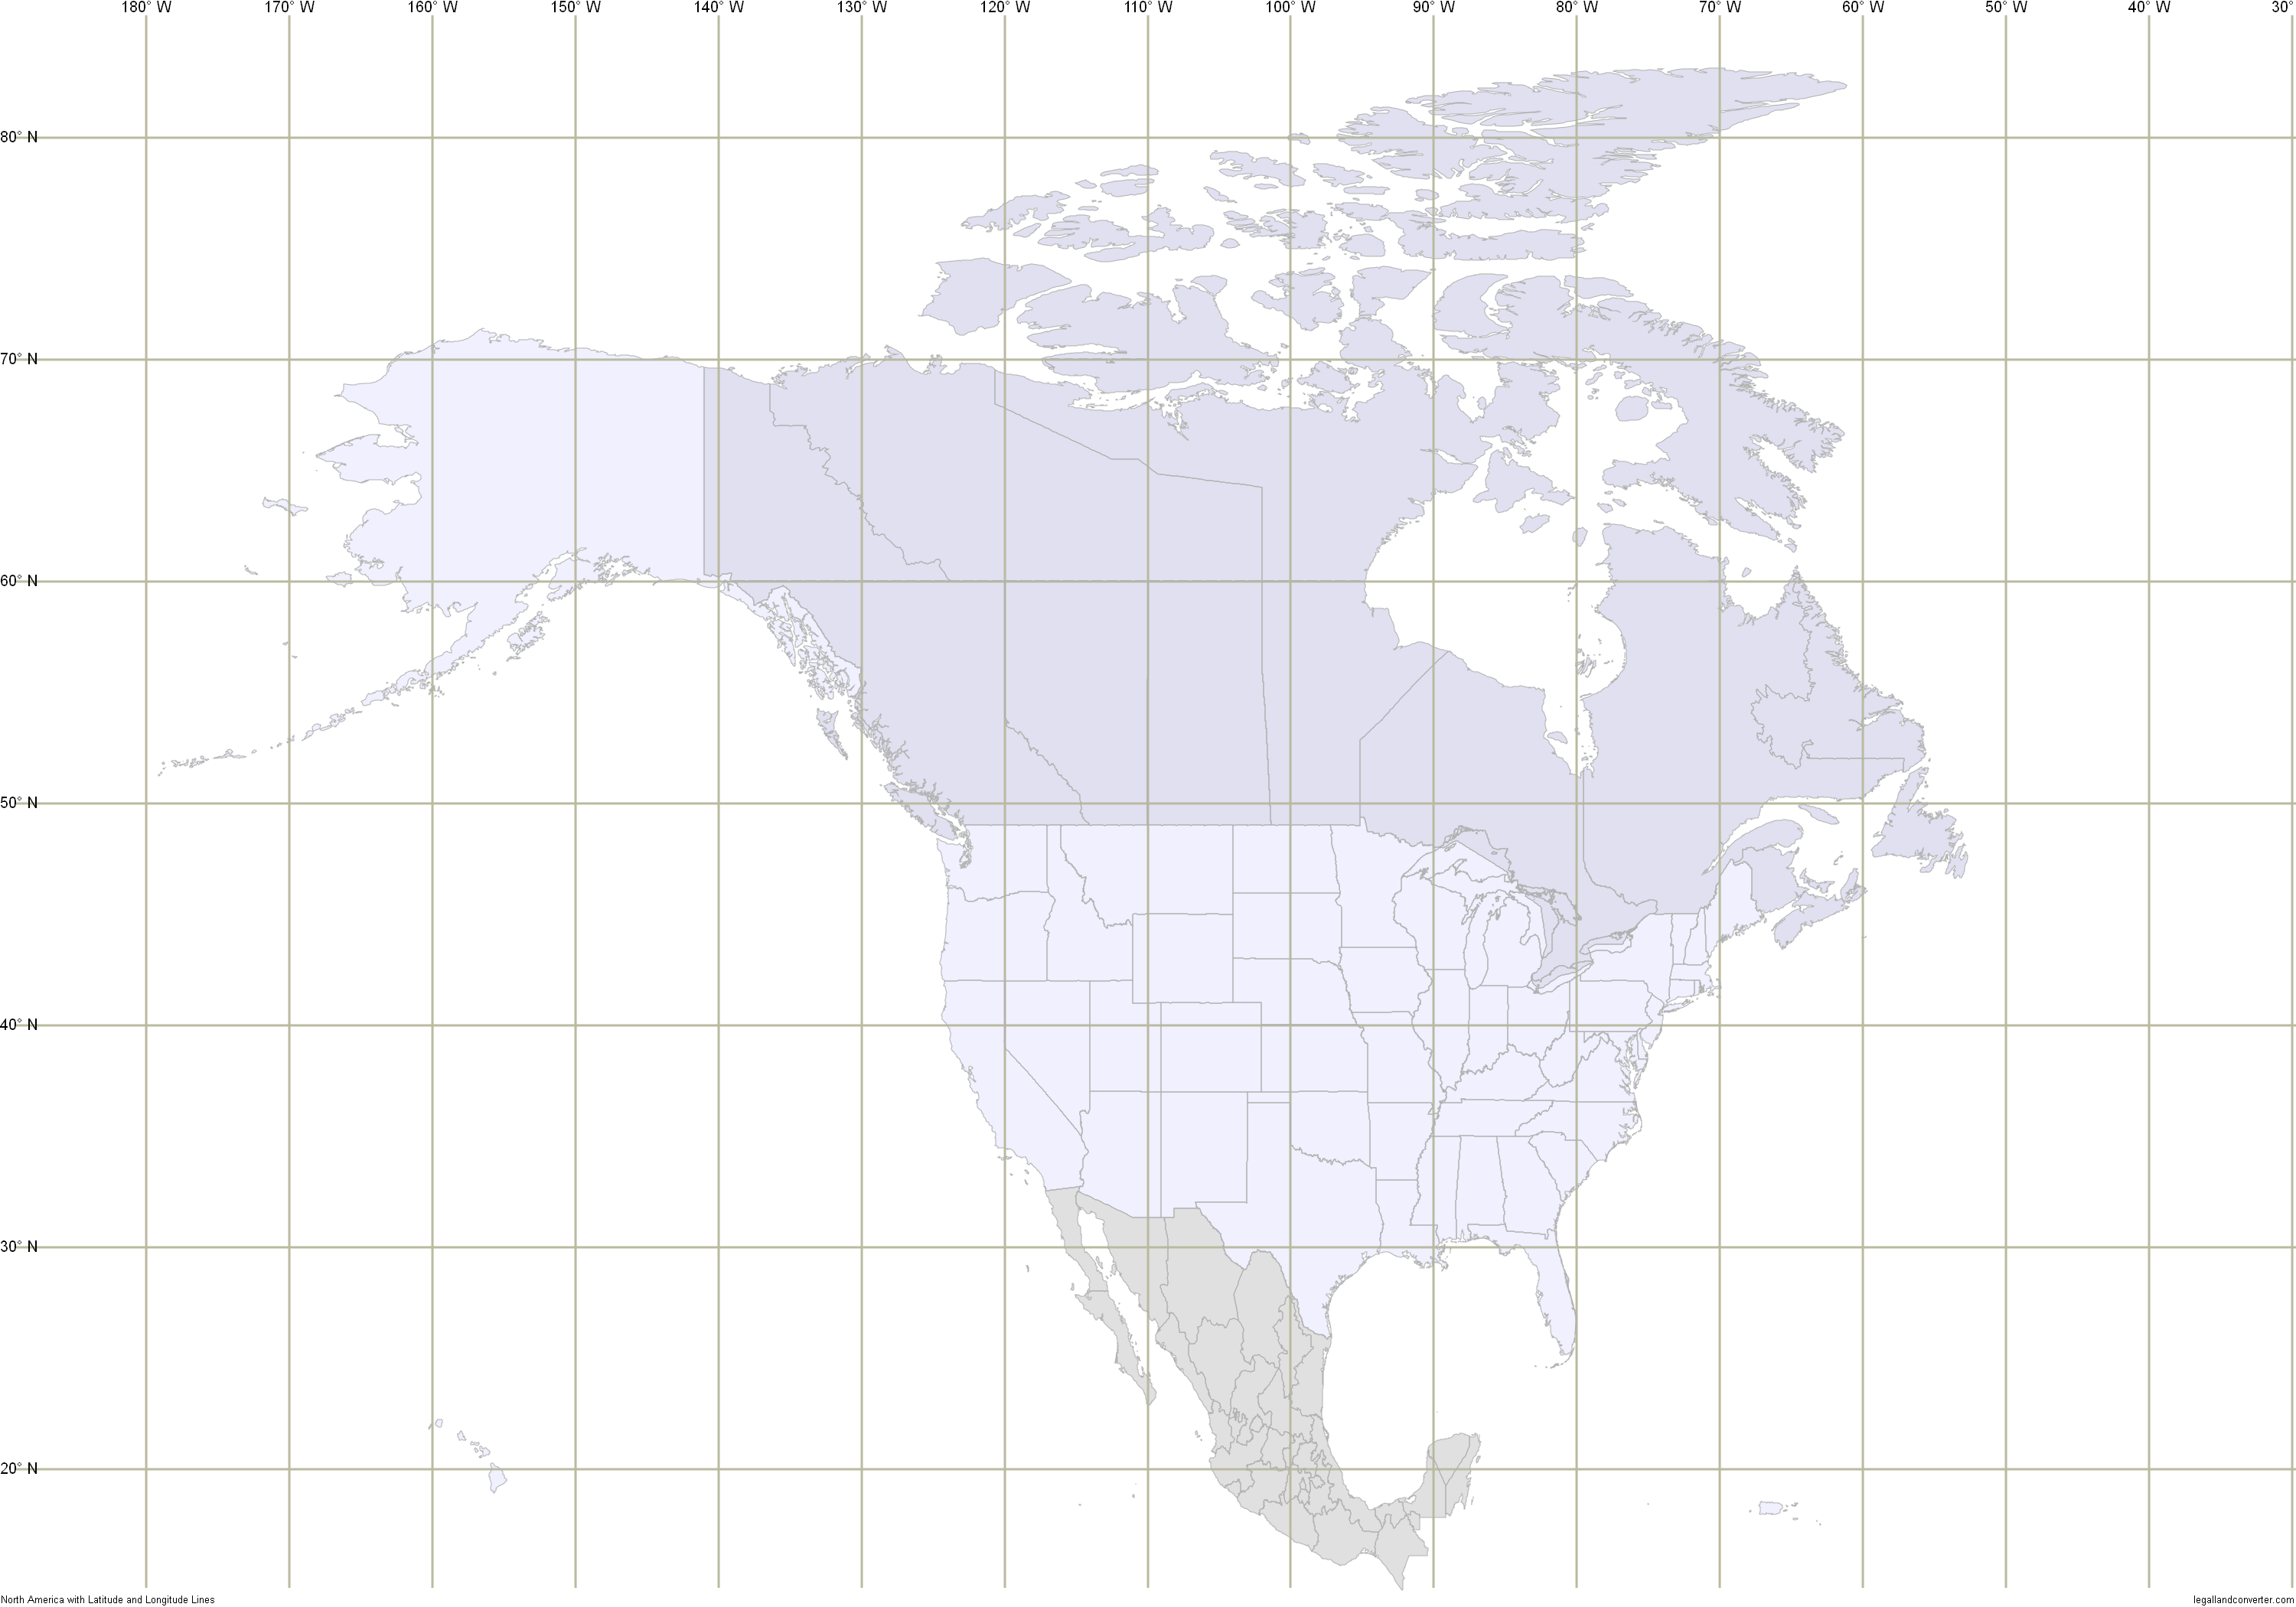 Blank Map Of North America With Latitude And Longitude Lines